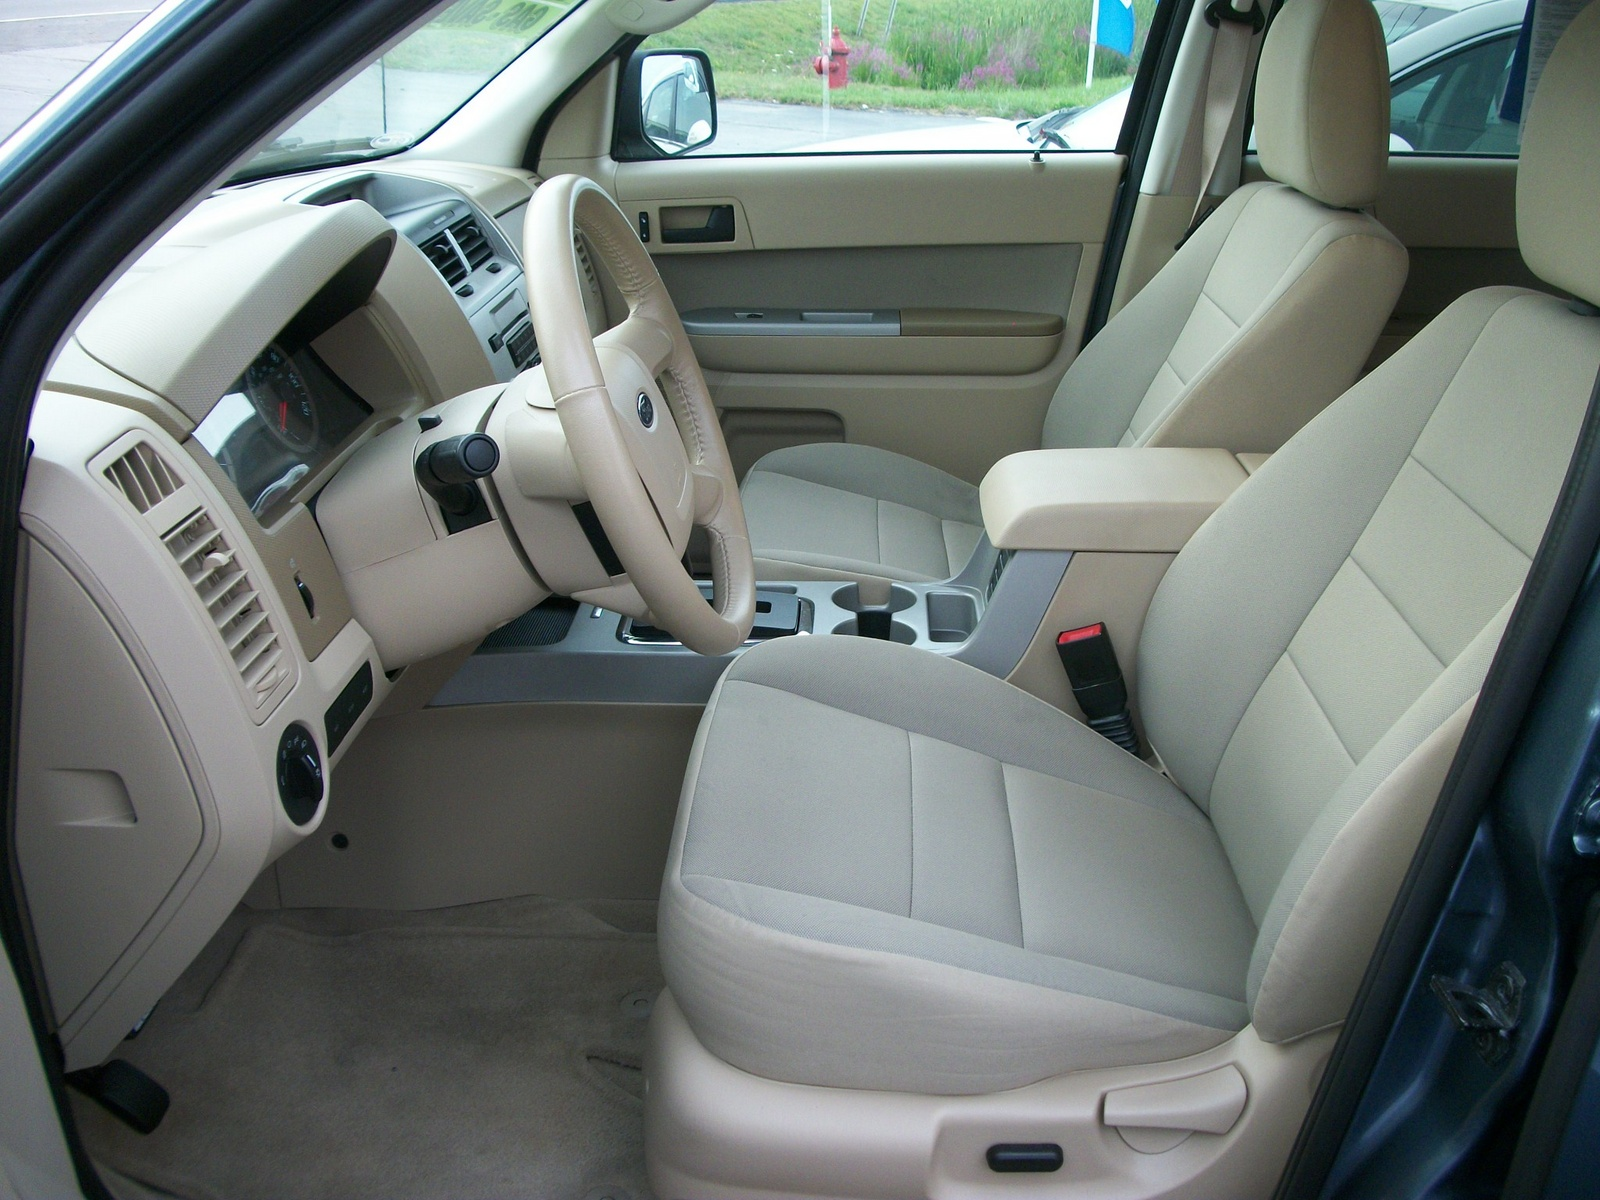 2011 ford escape interior pictures cargurus. Black Bedroom Furniture Sets. Home Design Ideas